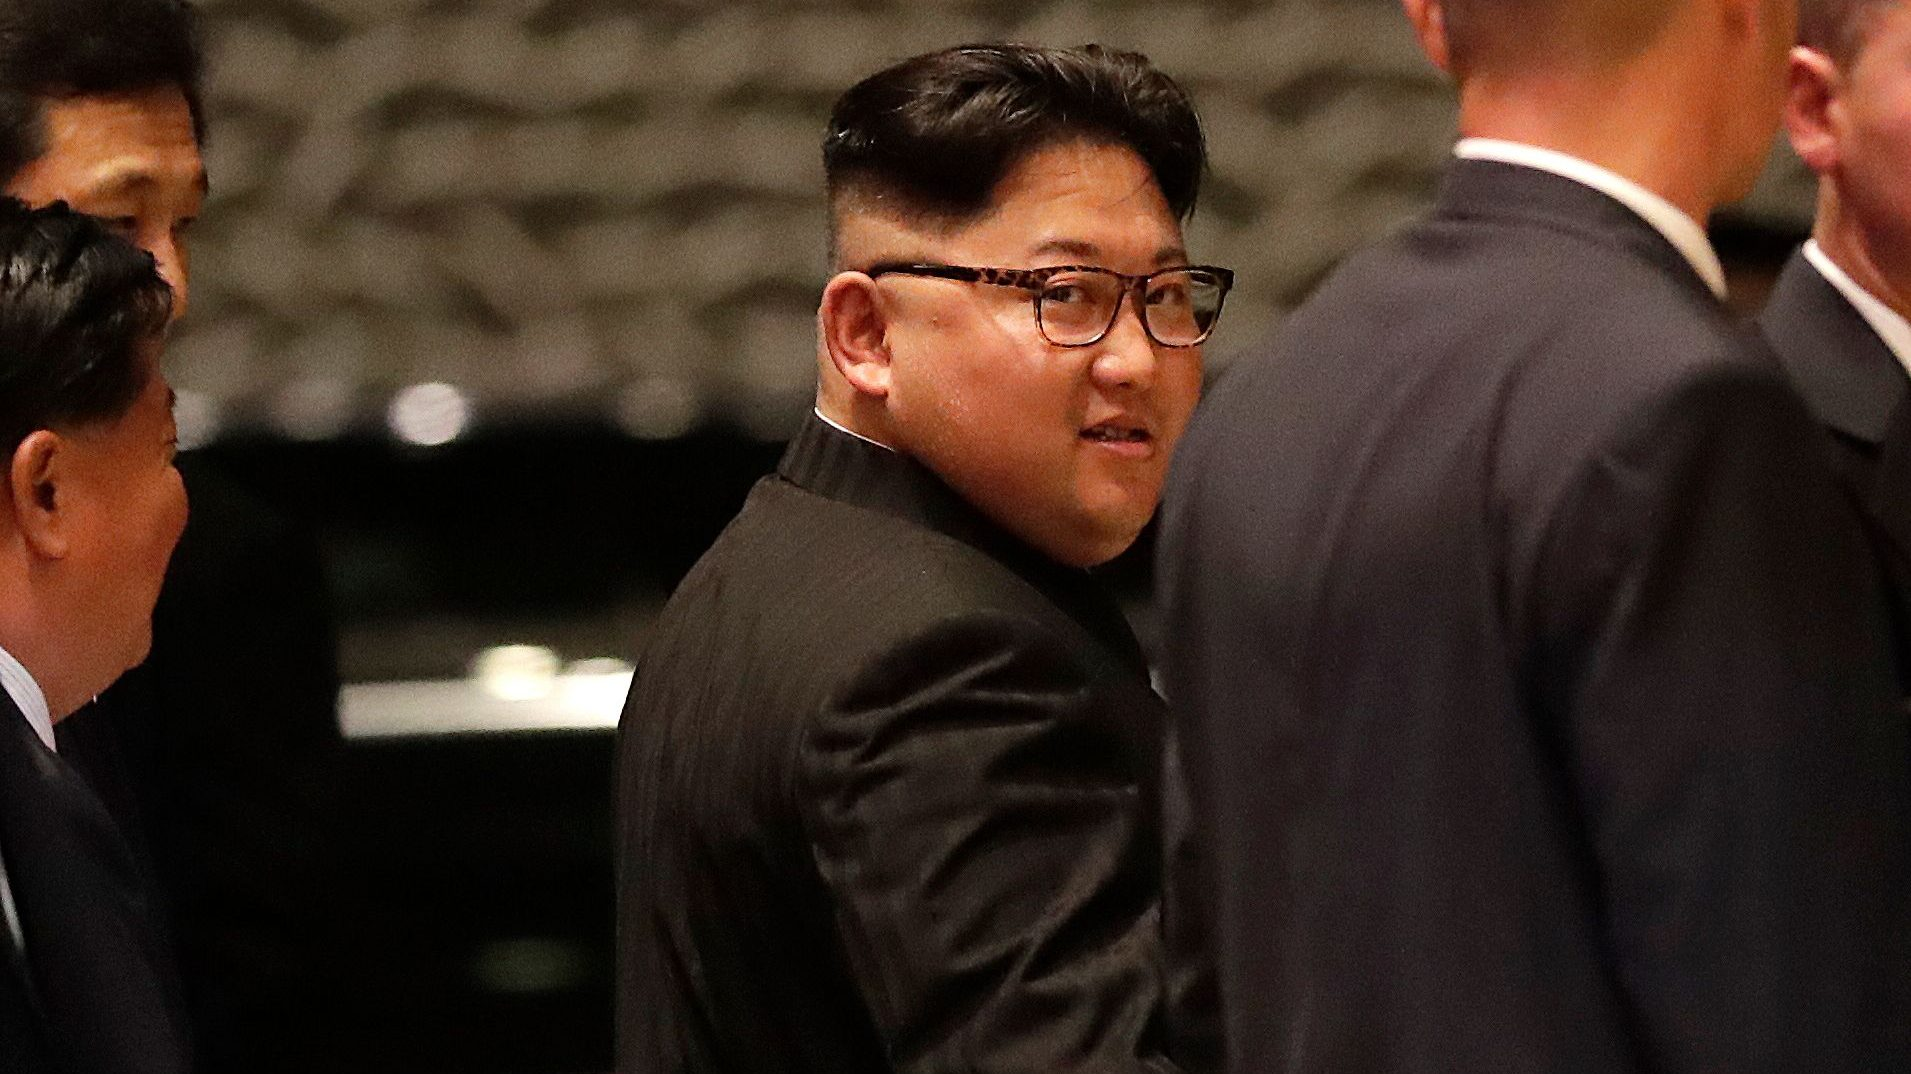 North Korean leader Kim Jong-un walks out from the Marina Bay Sands during a city tour in Singapore, 11 June 2018. US President Donald J. Trump and North Korean leader Kim Jong-un are scheduled to meet at the Capella Hotel in Sentosa for a historic summit on 12 June 2018.